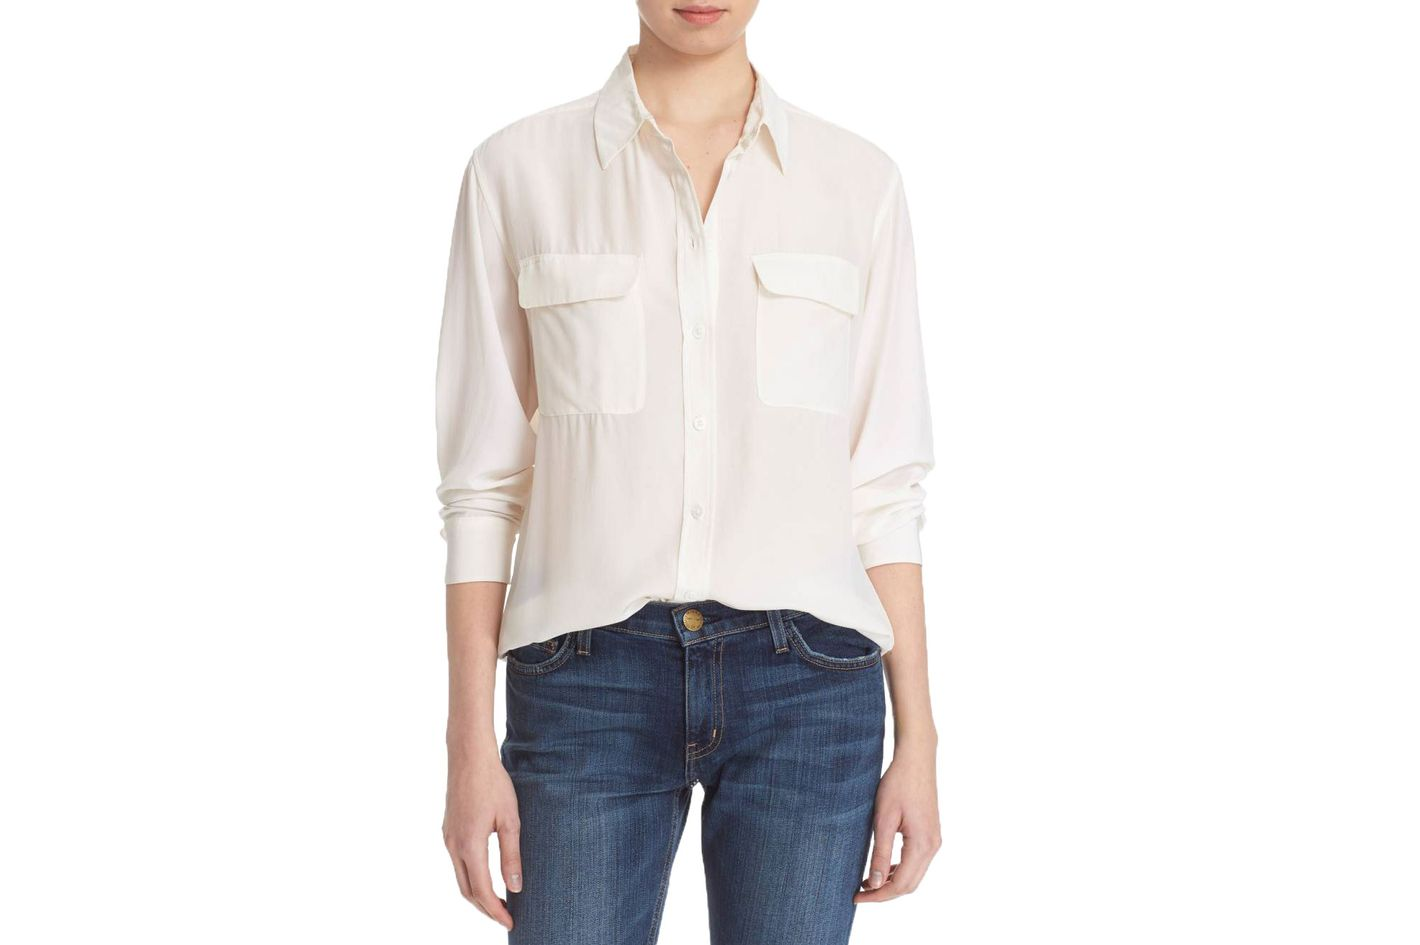 73aad85301ef9 ... shirts for women. best white button down for women